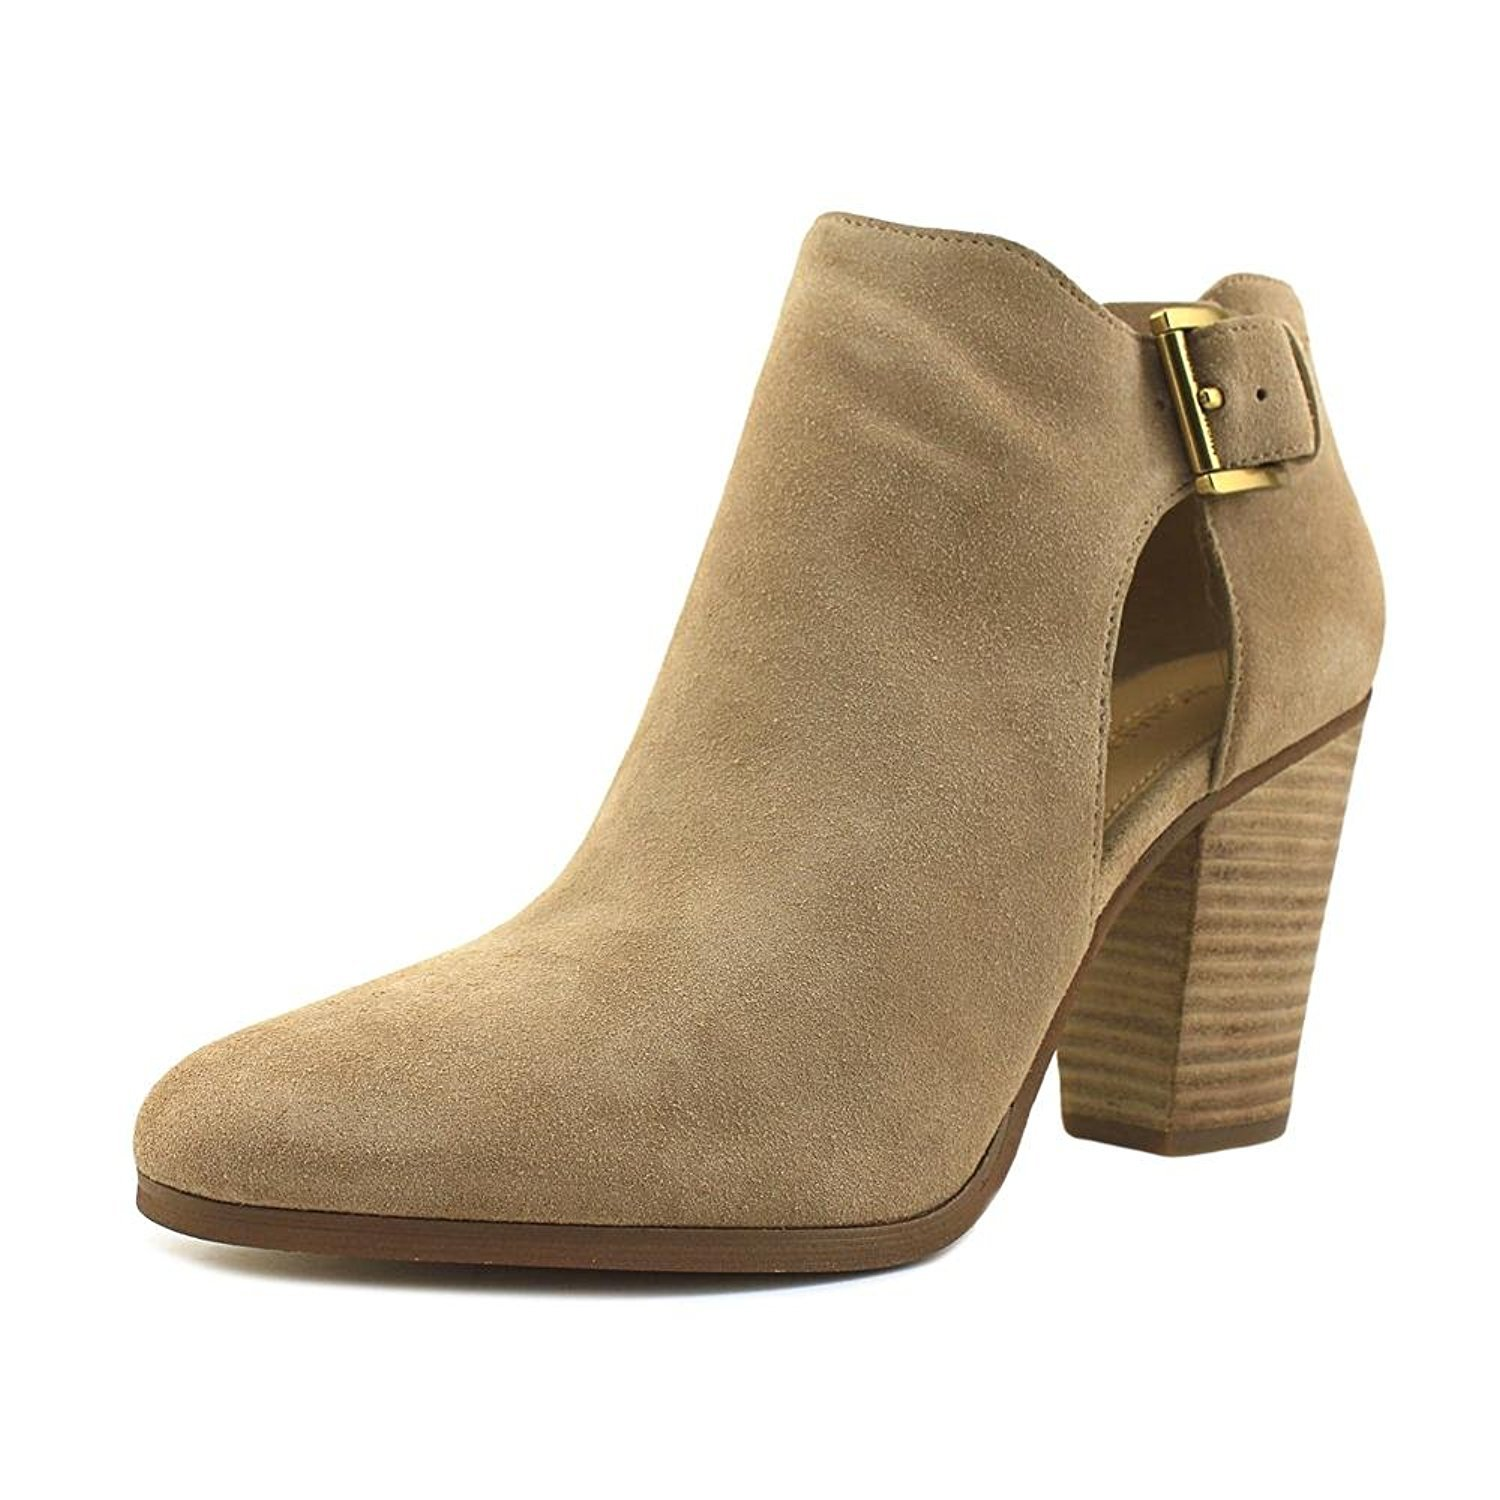 MICHAEL Michael Kors Women's Adams Bootie Dark Khaki Boot